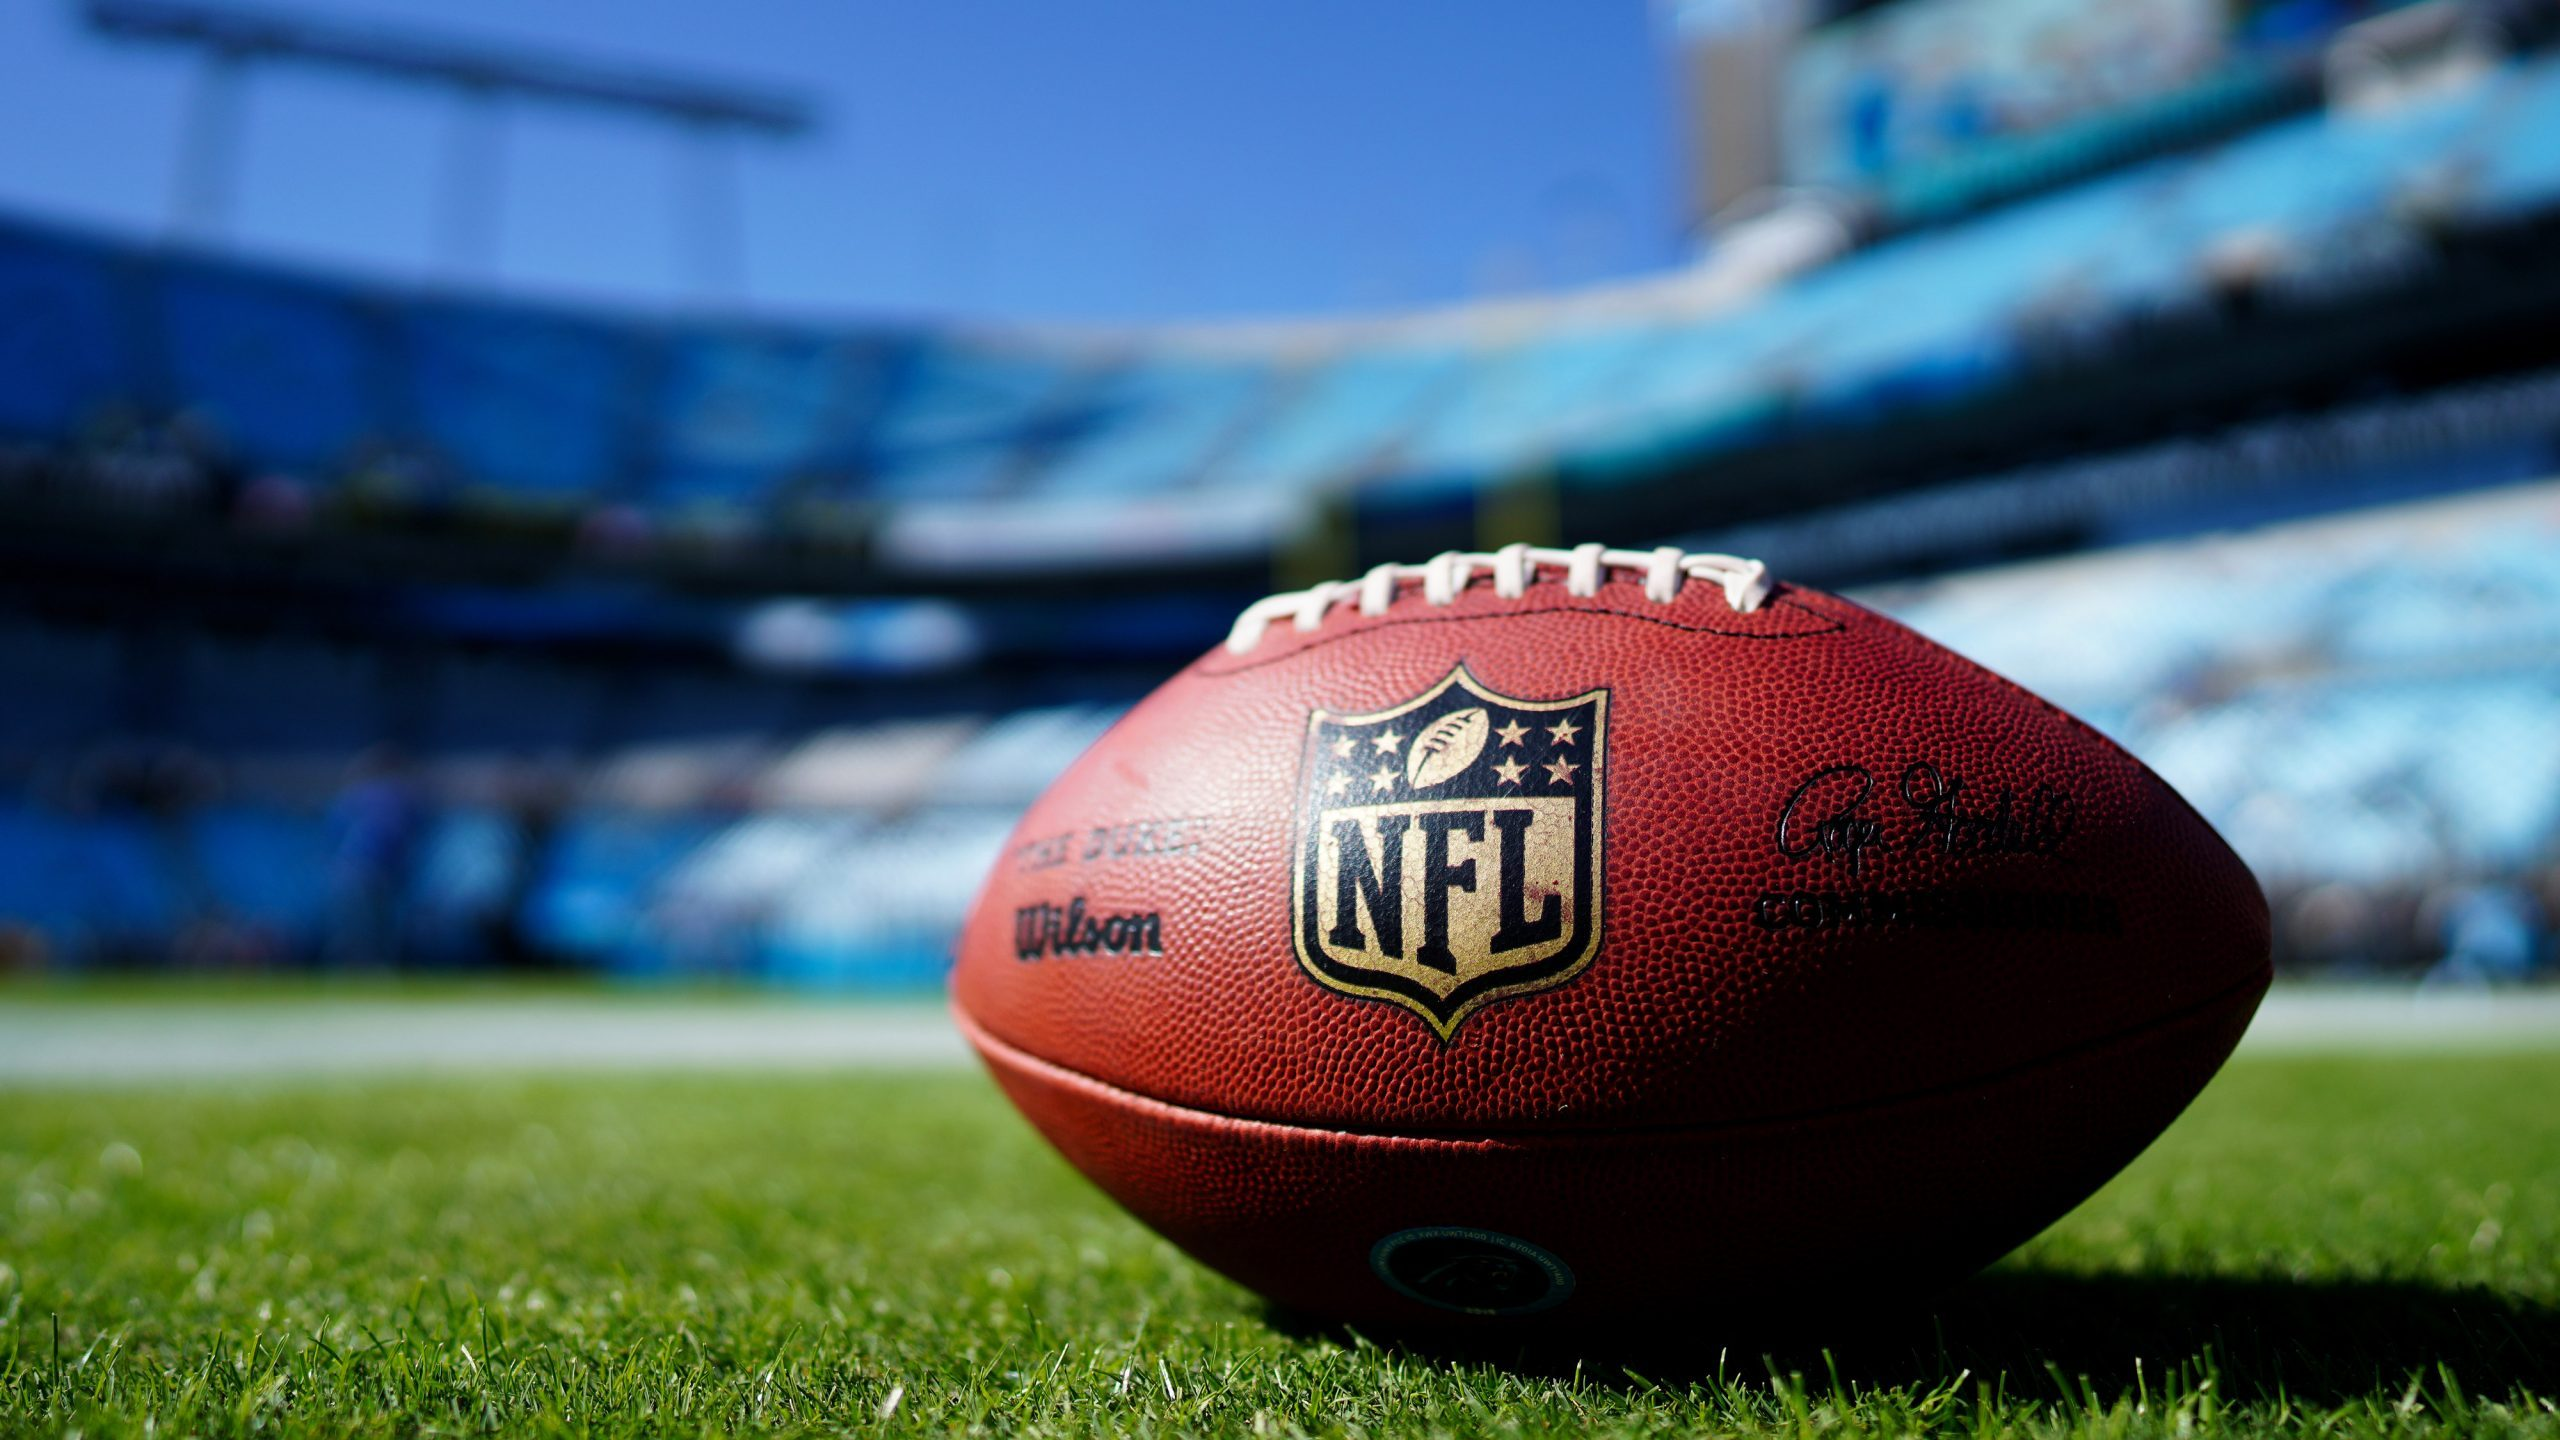 close up of nfl football on grass with blurred empty stadium in background. super bowl.